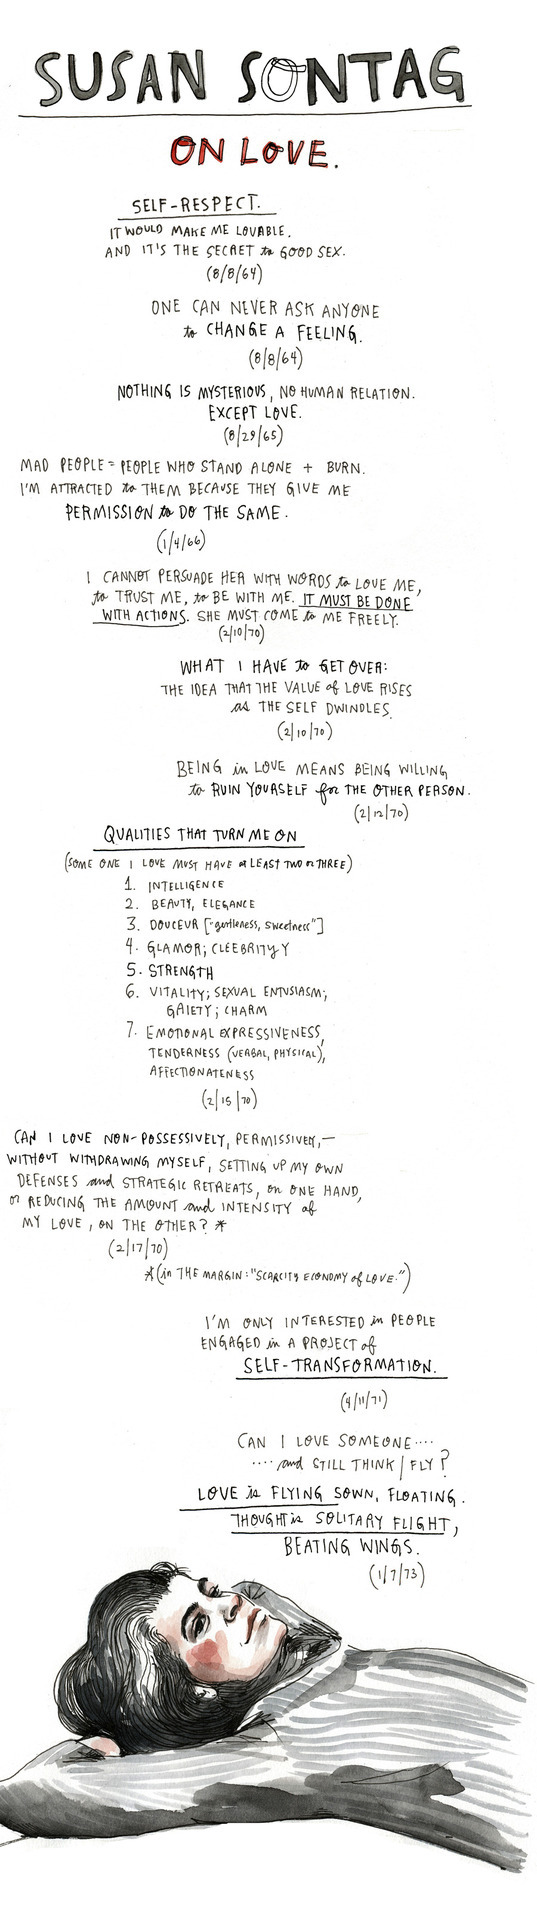 (via Susan Sontag on Love: Illustrated Diary Excerpts | Brain Pickings) Have we talked yet today about how much I worship Wendy MacNaughton?